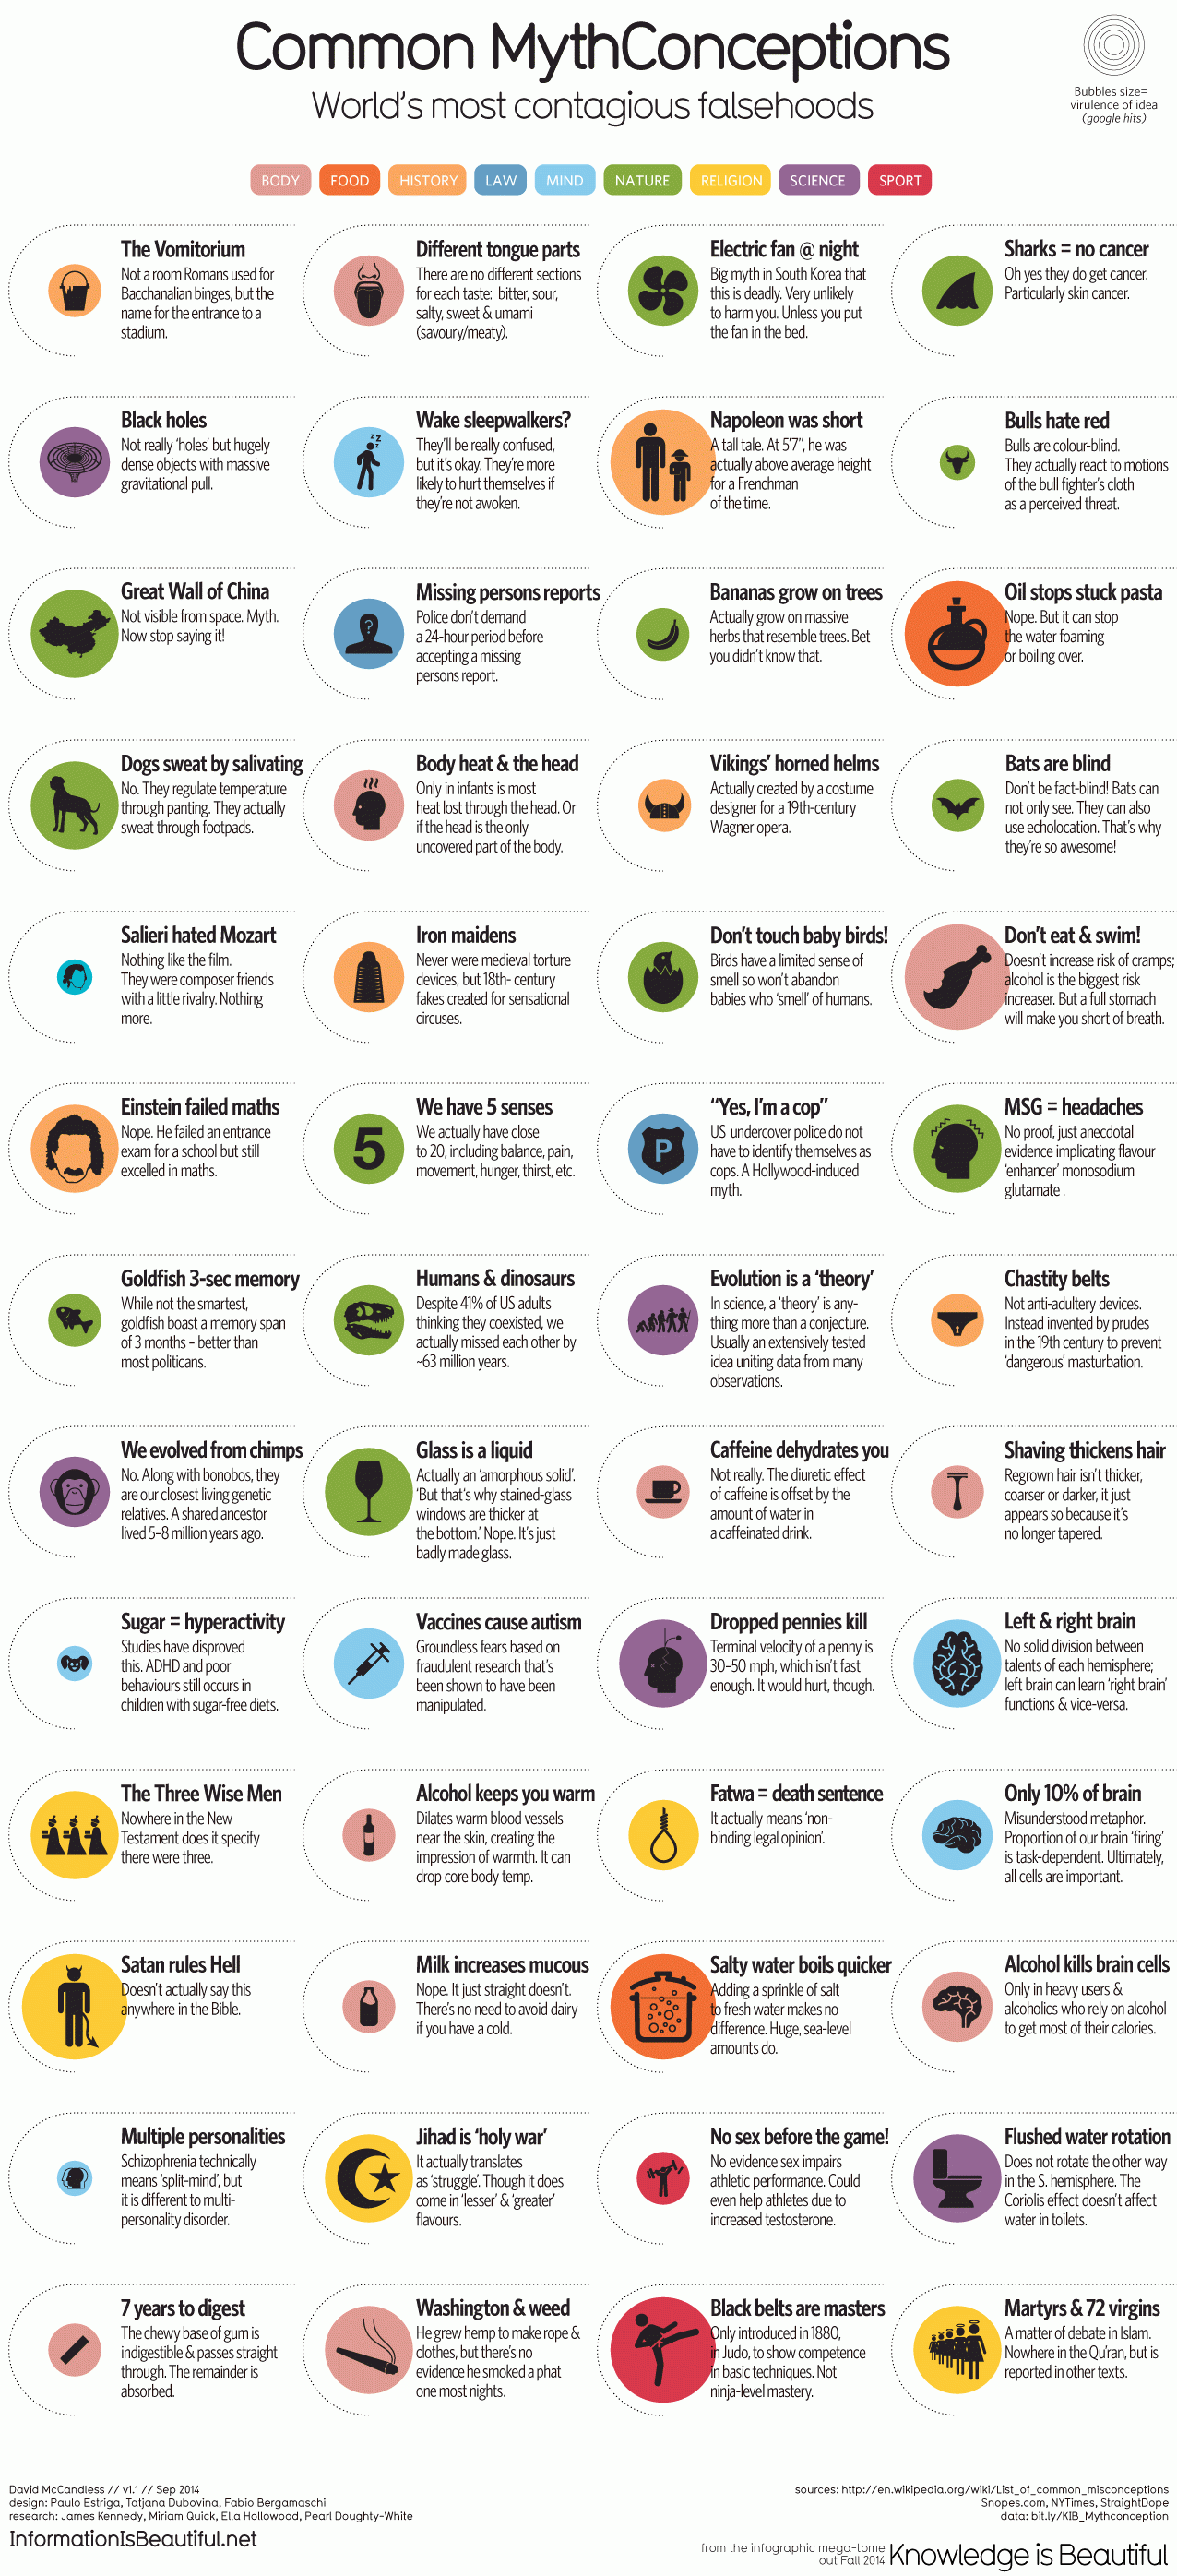 1276_Common-Mythconceptions_Oct22nd